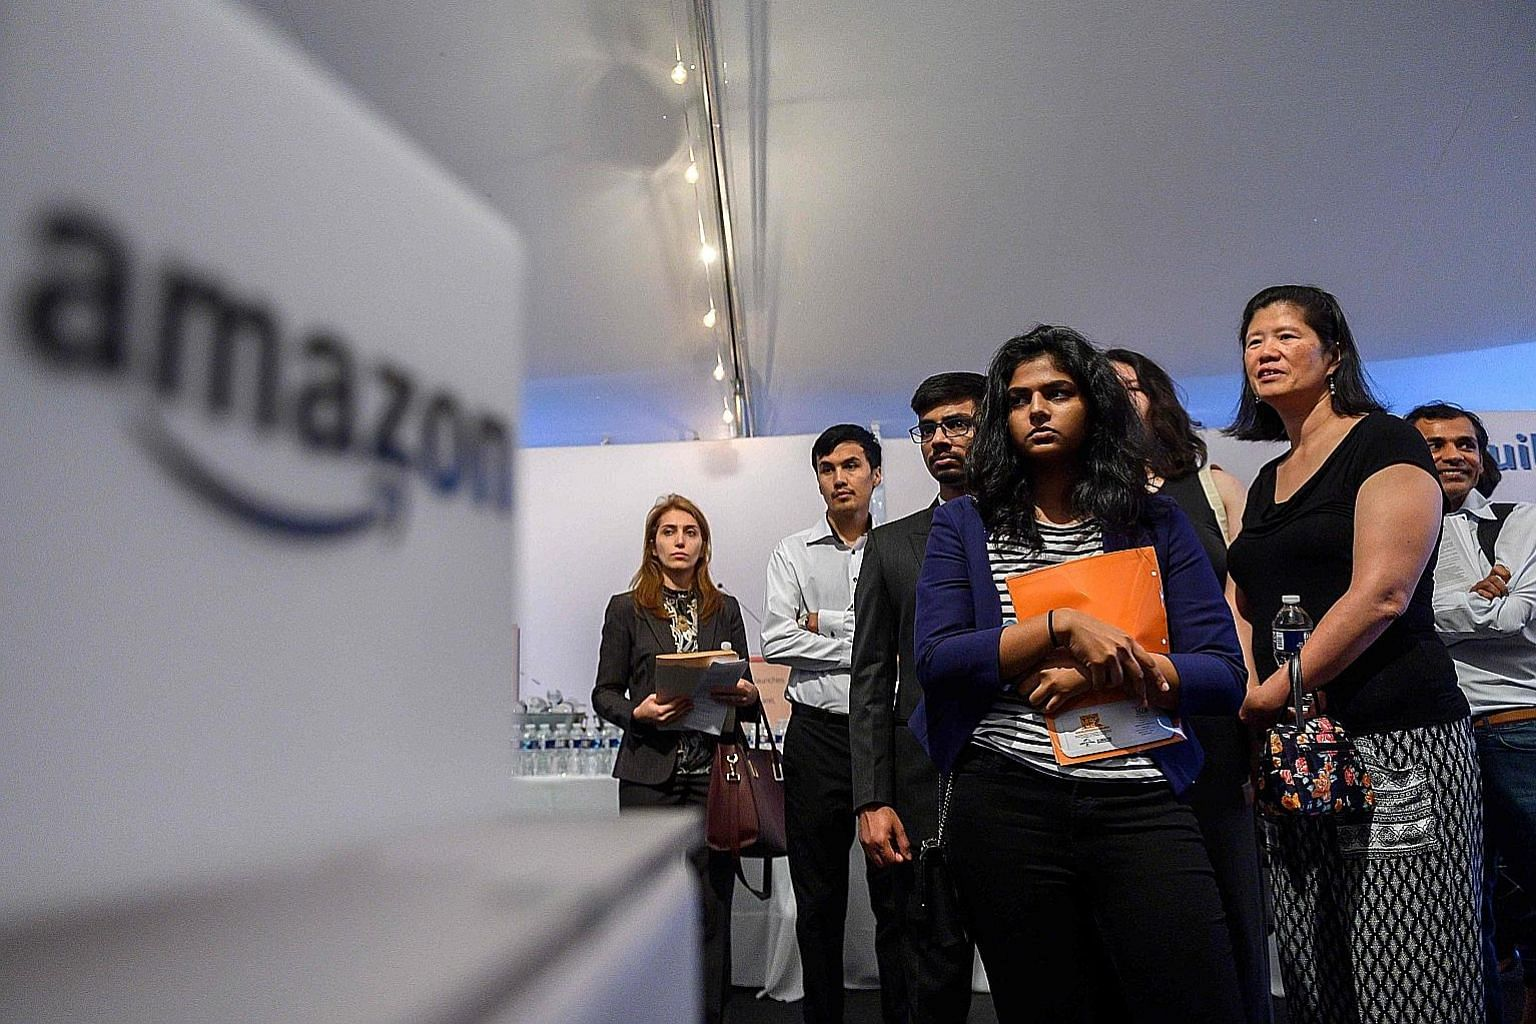 Job hunters at an Amazon Career Day event in the US. A report on Friday showed job growth slowed down last month and wage growth stalled, even as unemployment dropped to a 50-year low. Surveys released earlier last week showed factory activity is con